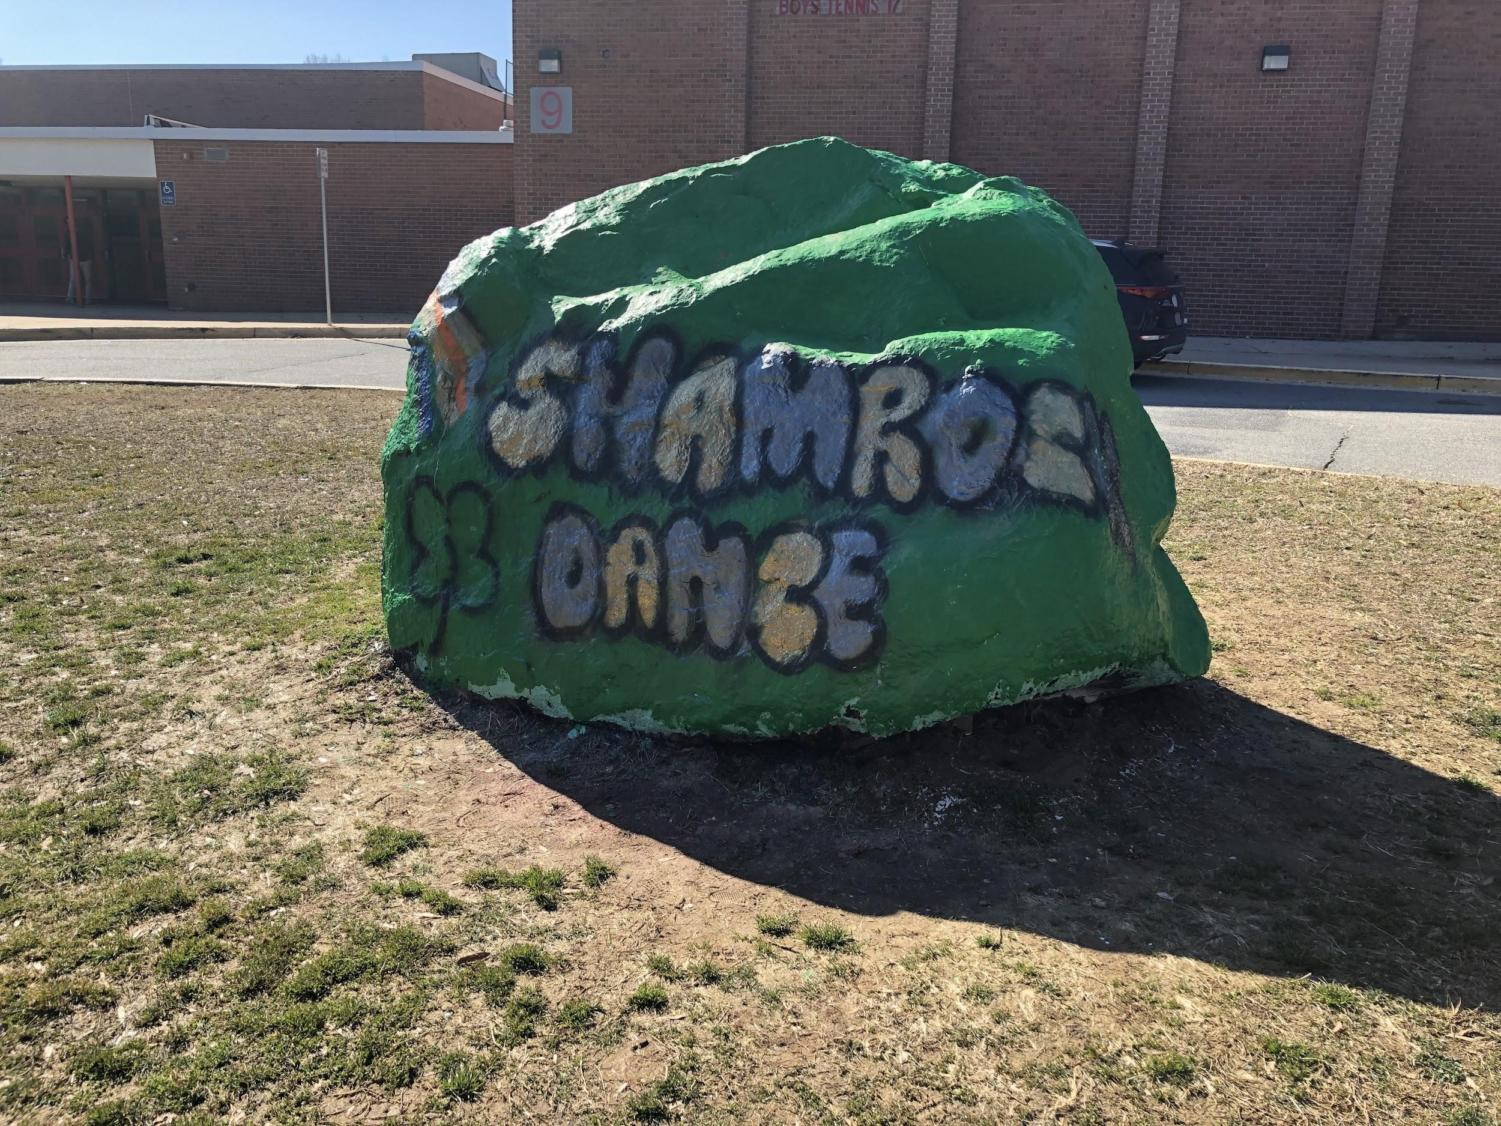 The McLeadership students painted the rock to promote the upcoming dance.